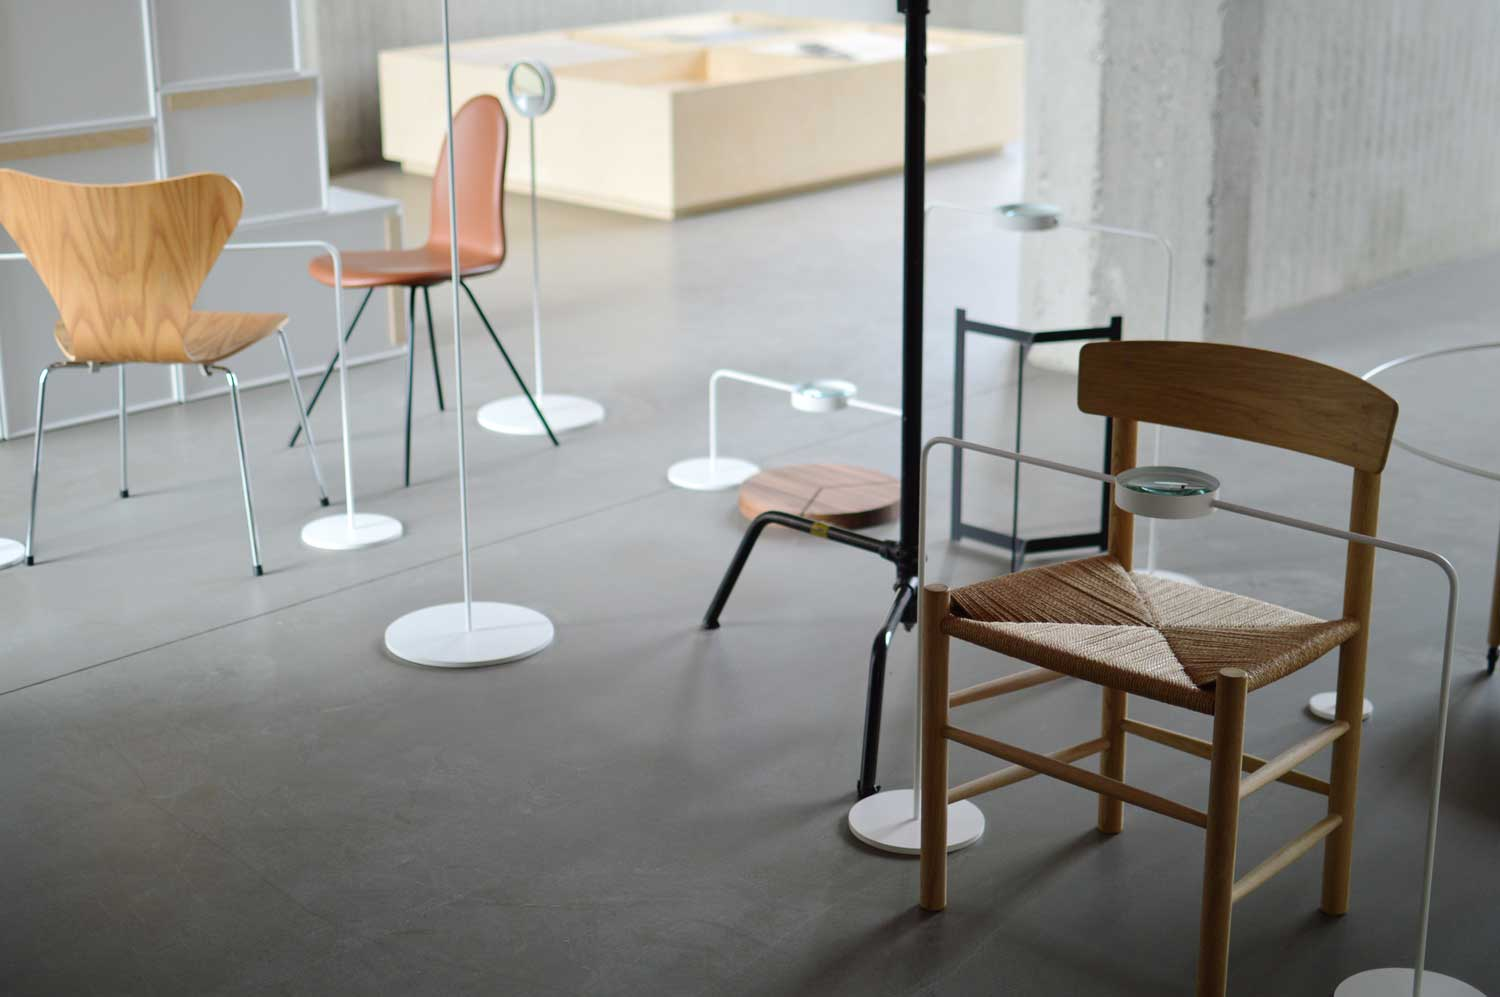 Re-Frame presented by Frame and DanishTM, 3 Days of Design Copenhagen | Yellowtrace